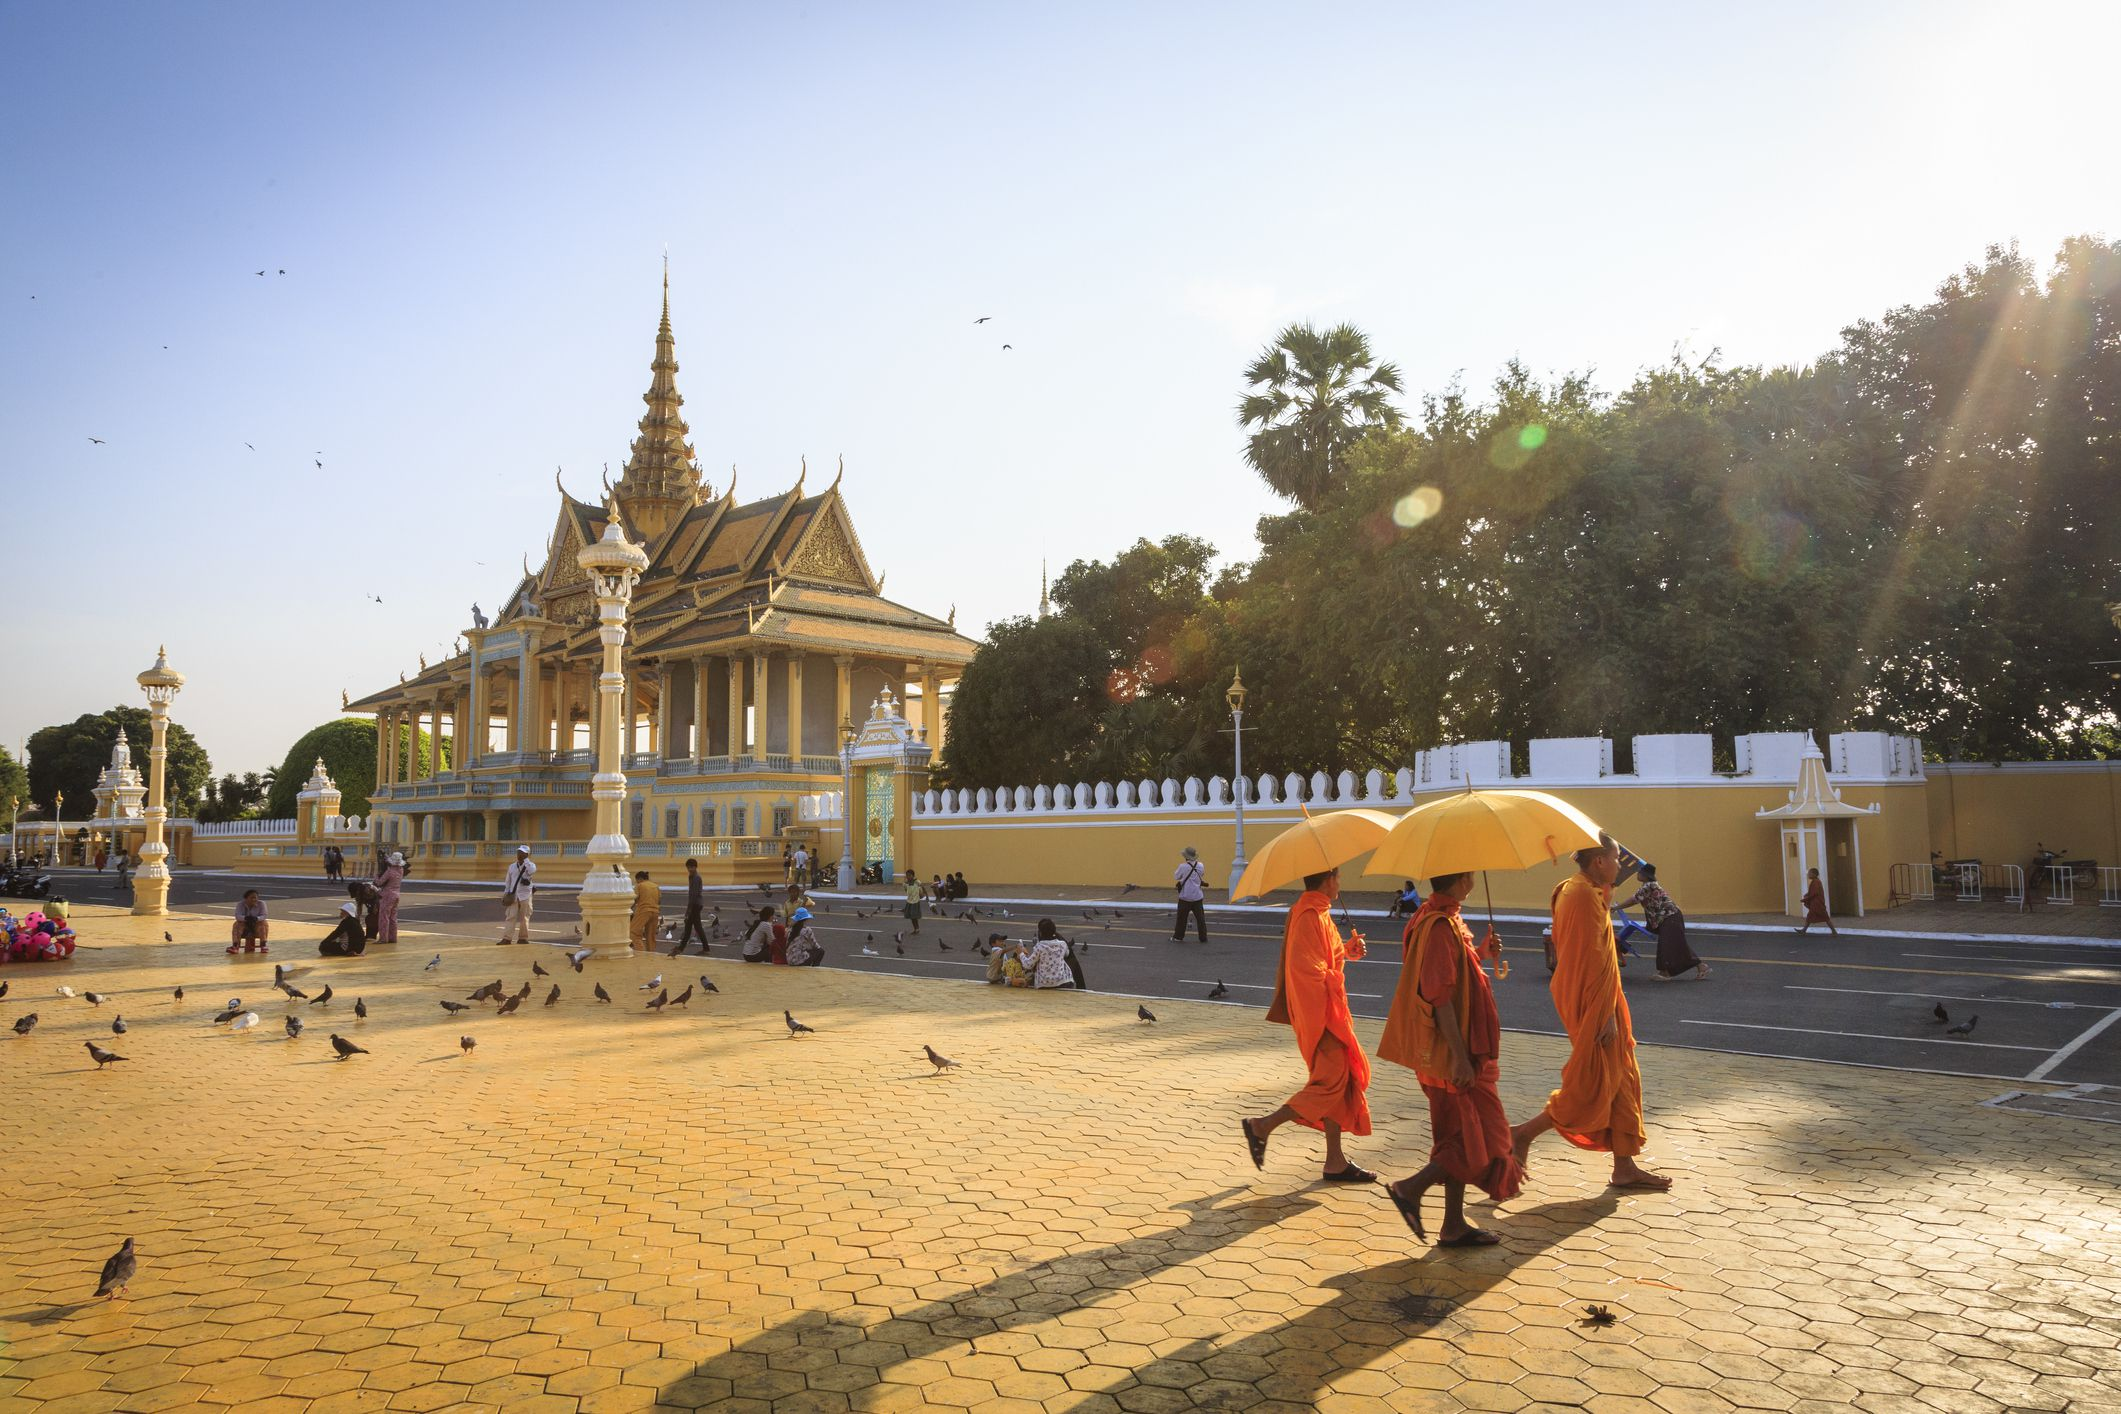 The Top 7 Things to Do in Phnom Penh, Cambodia